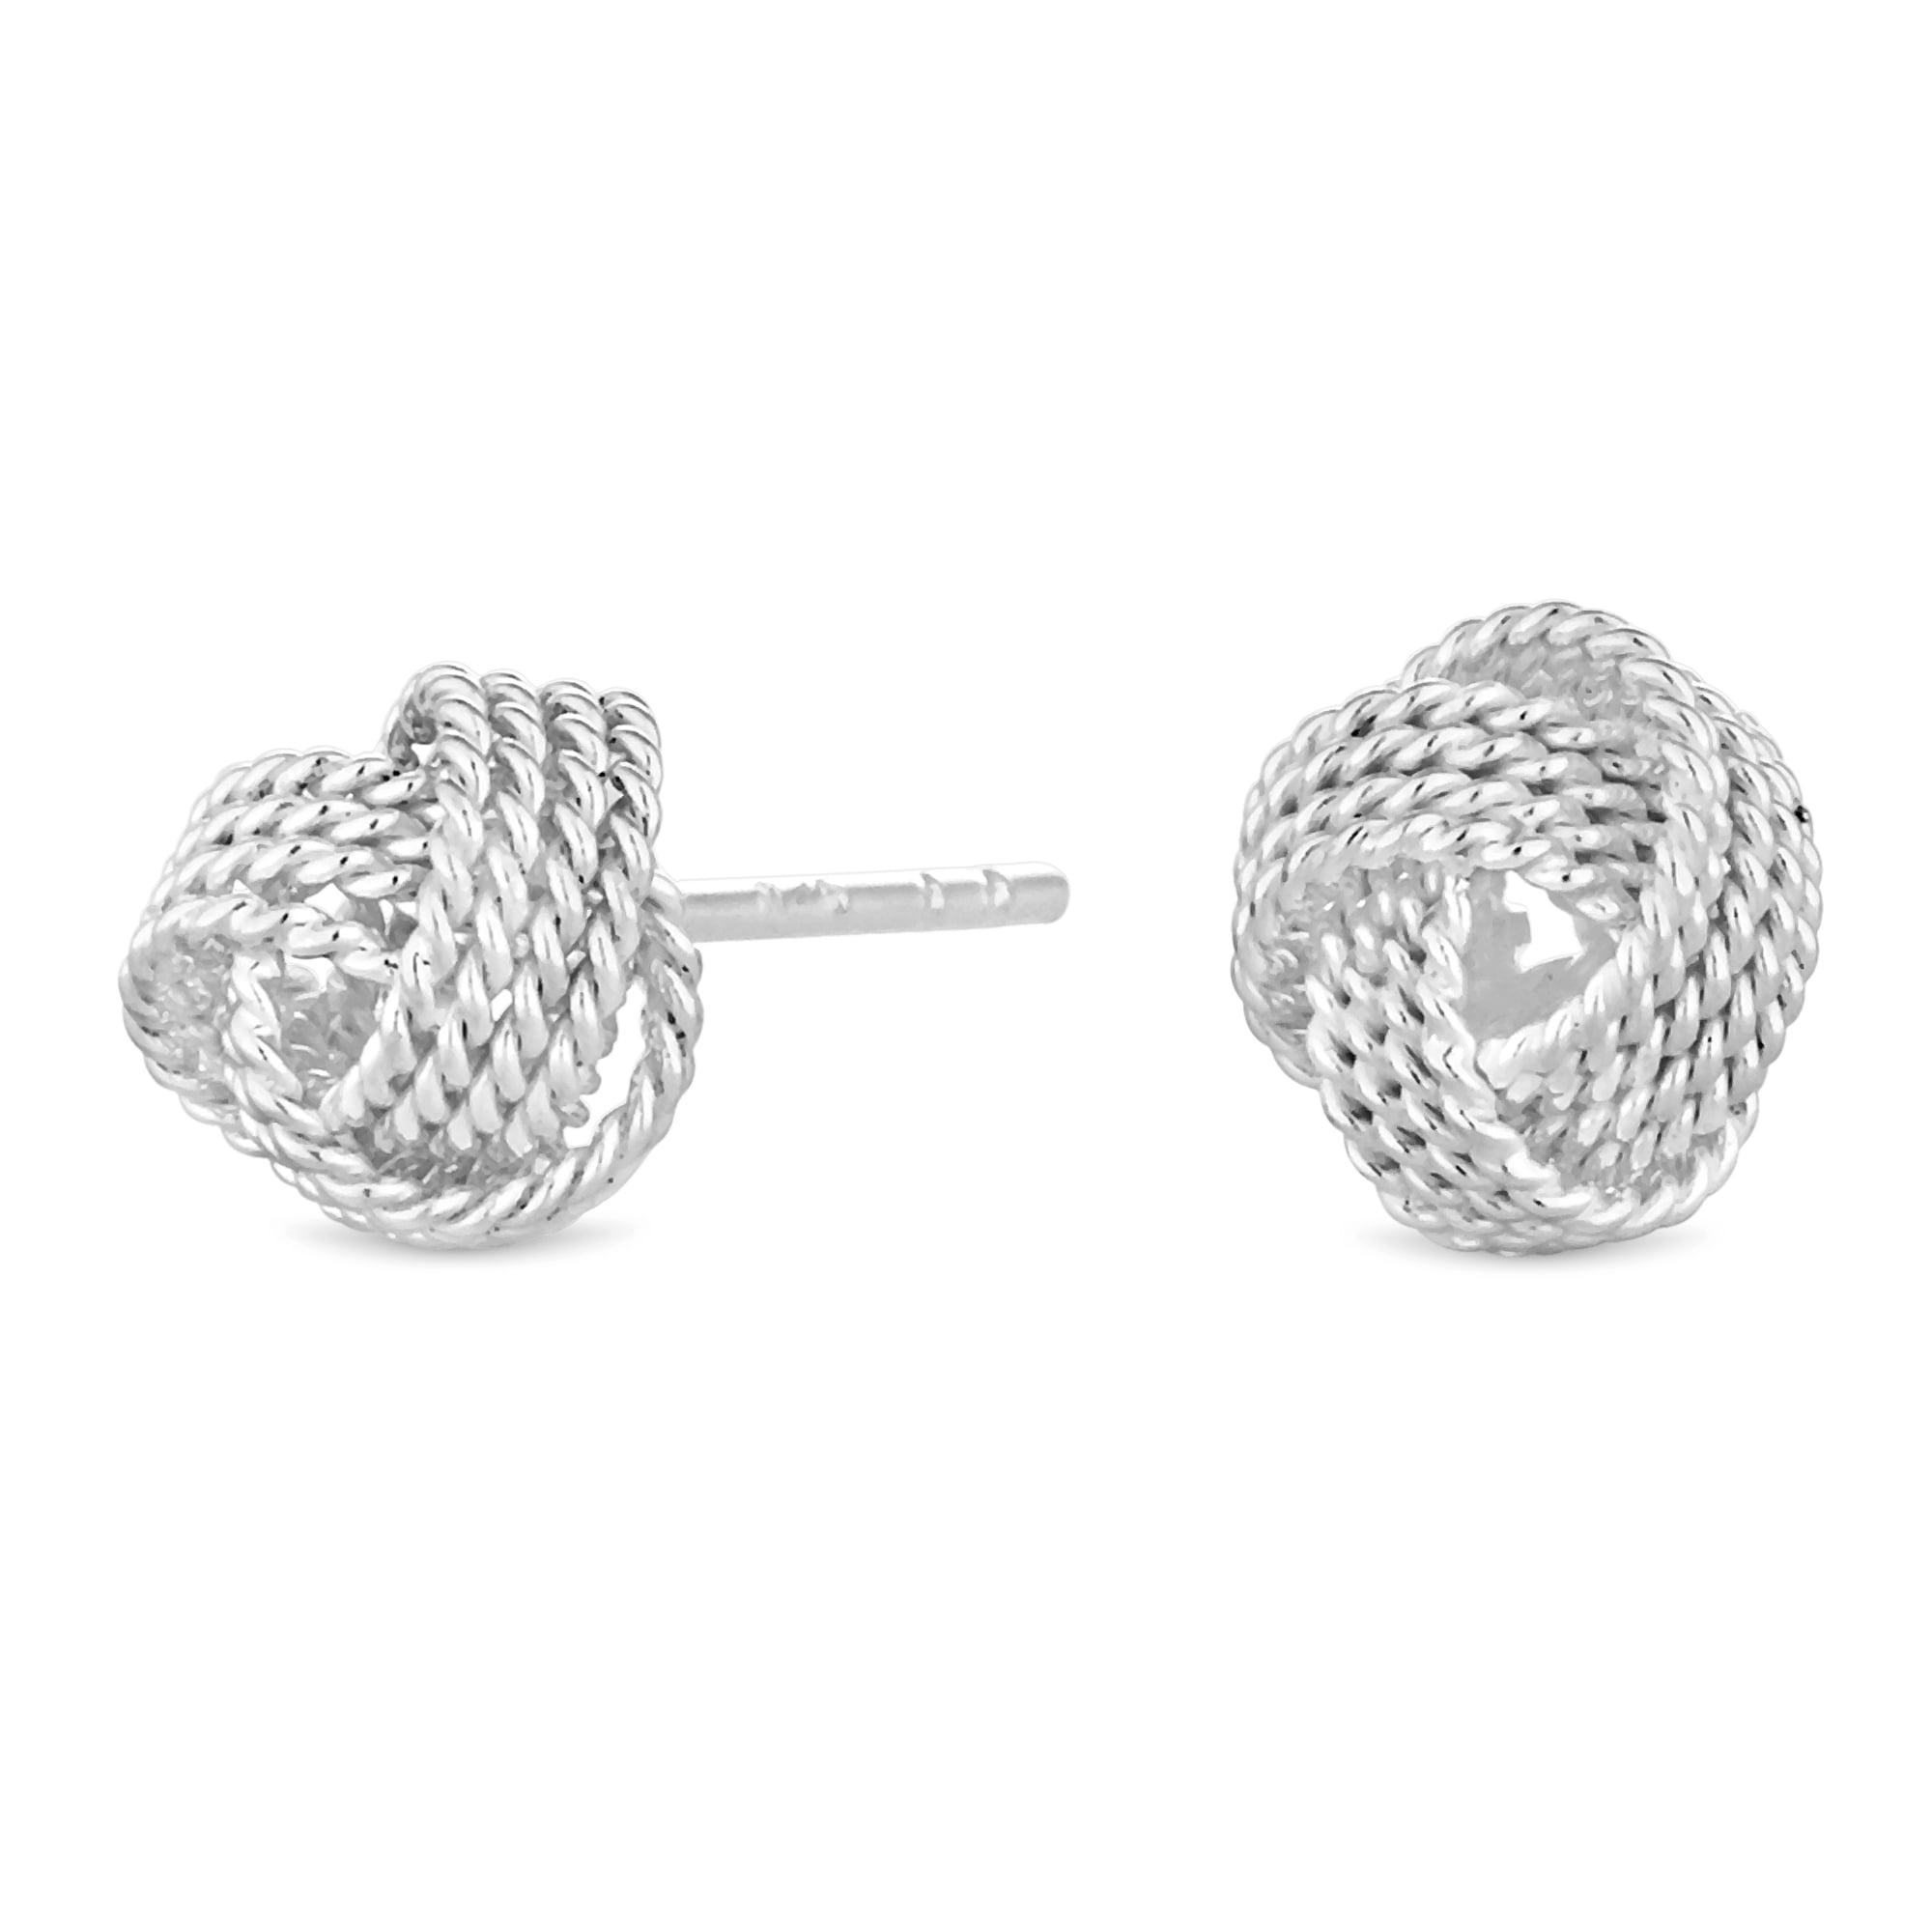 f3a846ef7 Simply Silver Sterling Silver 925 Rope Knot Stud Earring